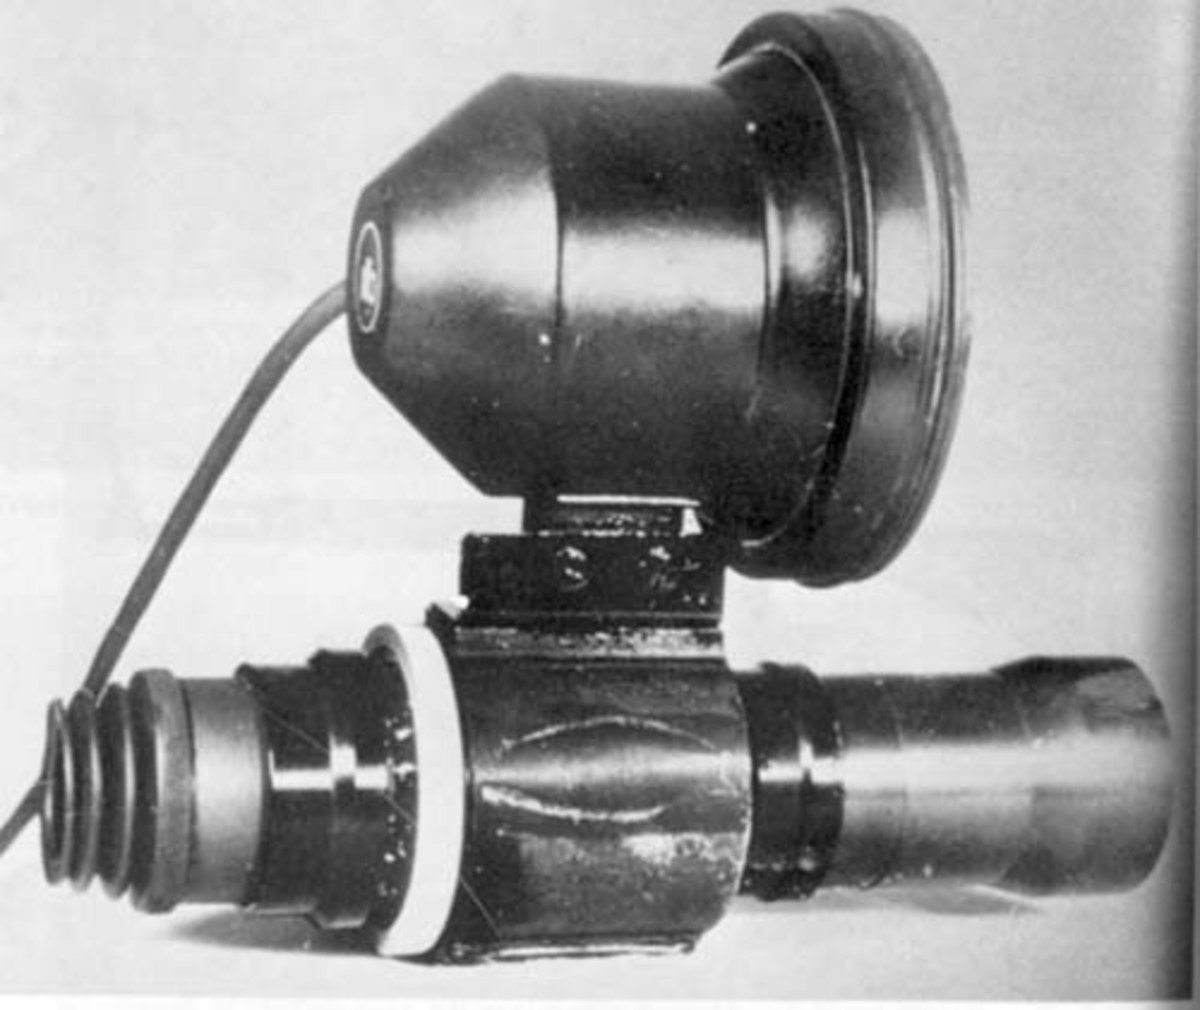 """Zielgerät 1229 infra-red aiming device, also known by its codename Vampir (""""vampire"""") sniper scope. In the Ardennes most German tanks also had infra-red vision."""